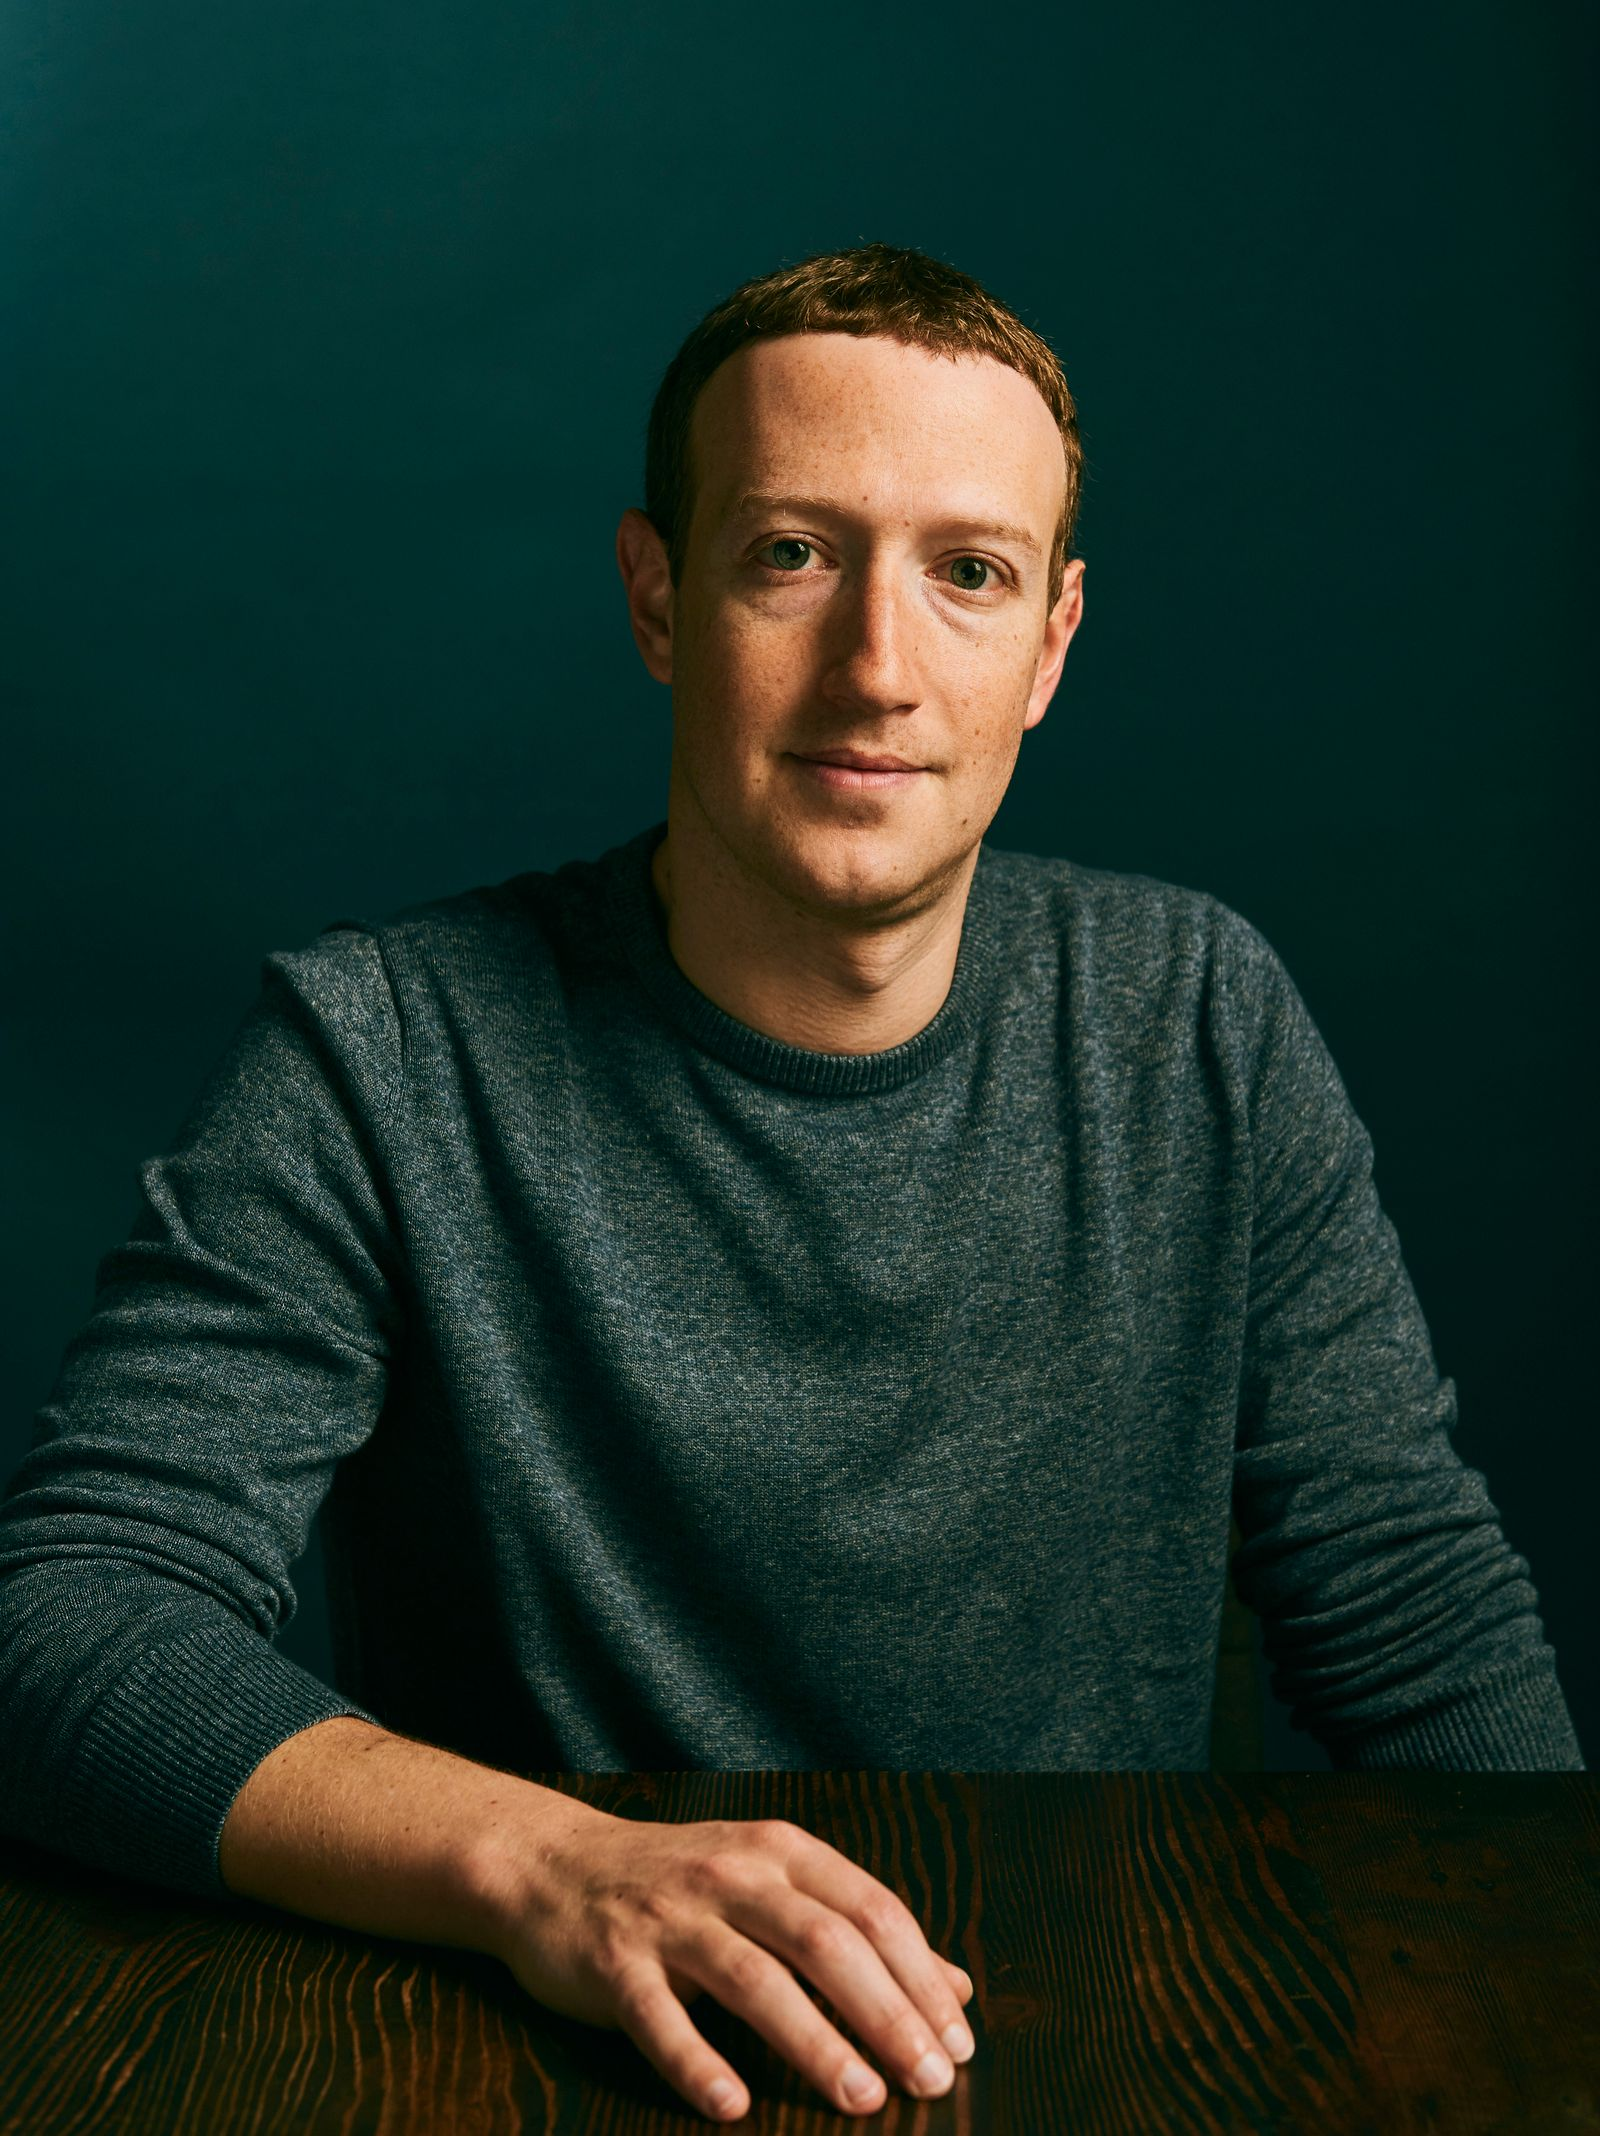 Mark Zuckerberg, the founder of Facebook, in Palo Alto, Calif, April 11, 2019.